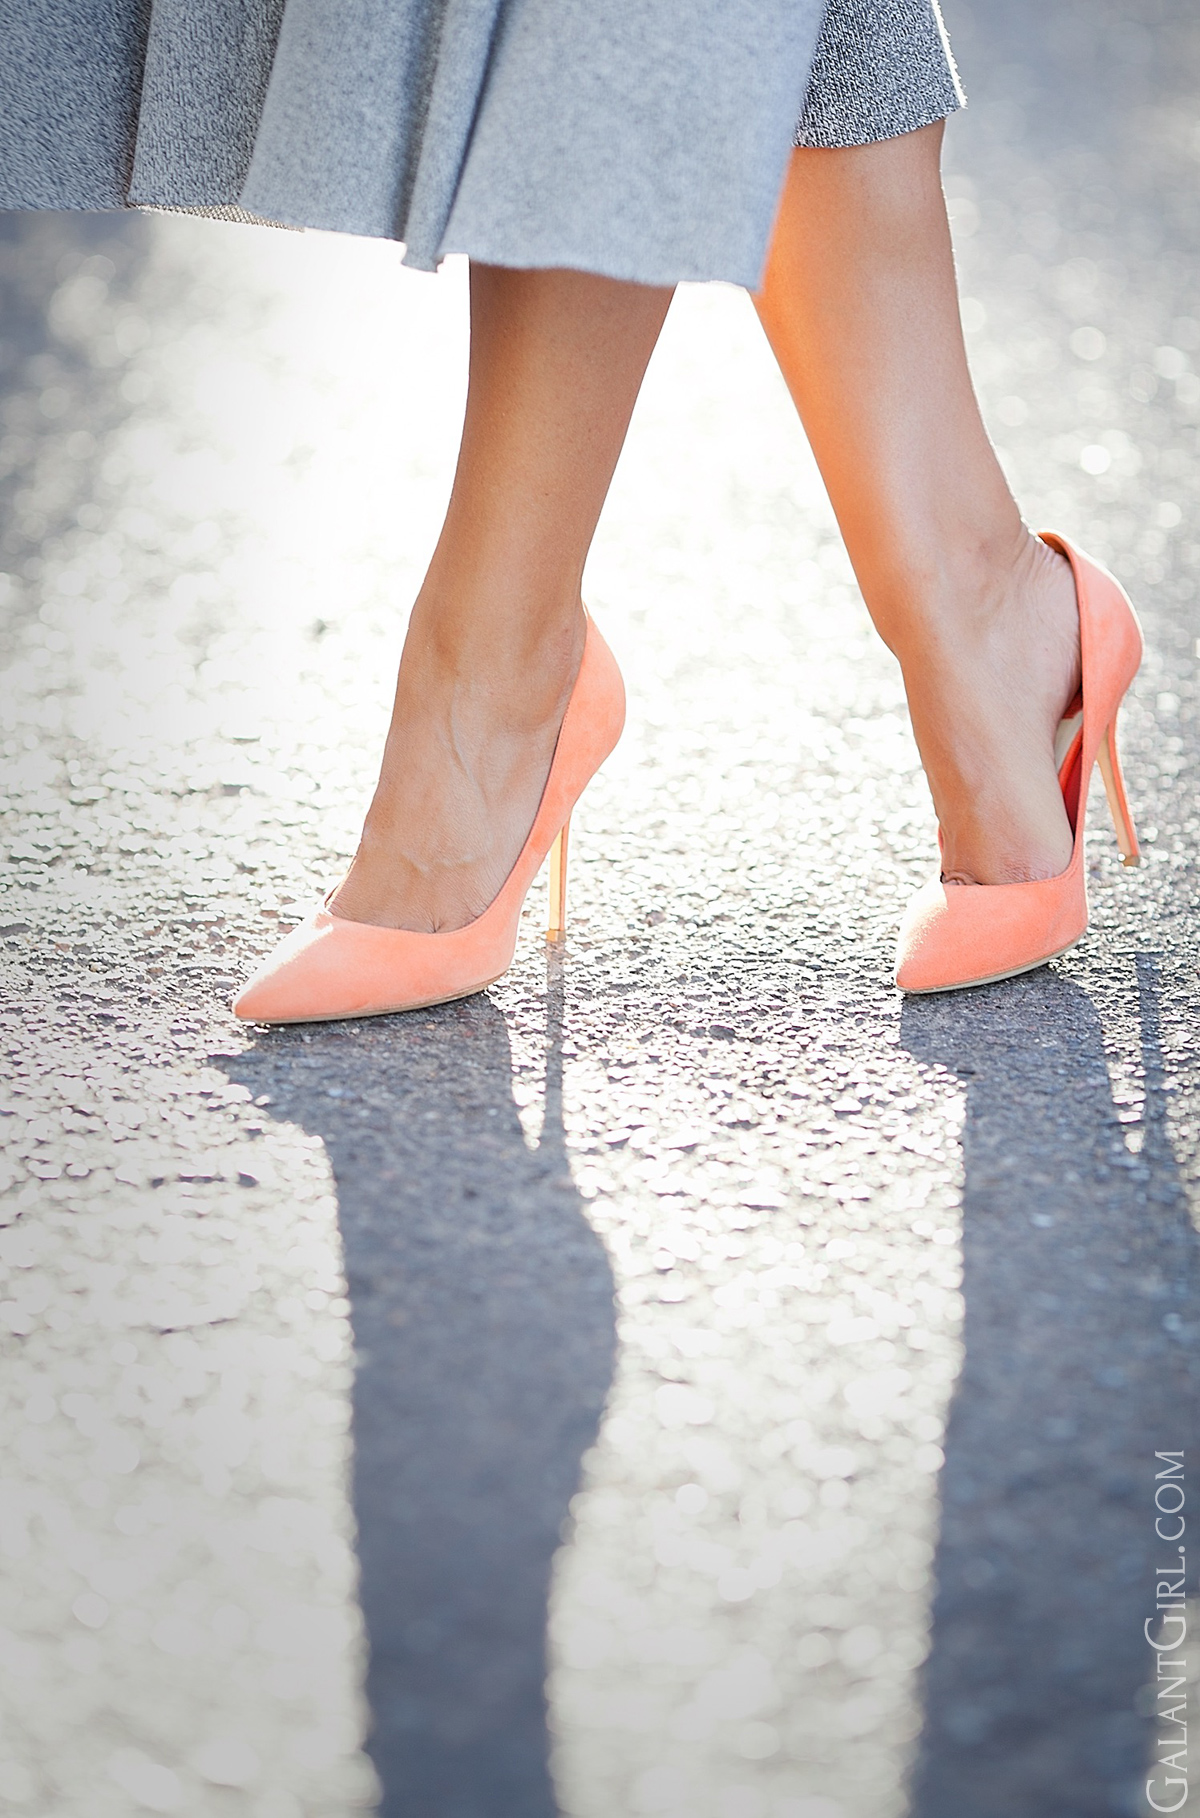 christian+dior+orange+pumps